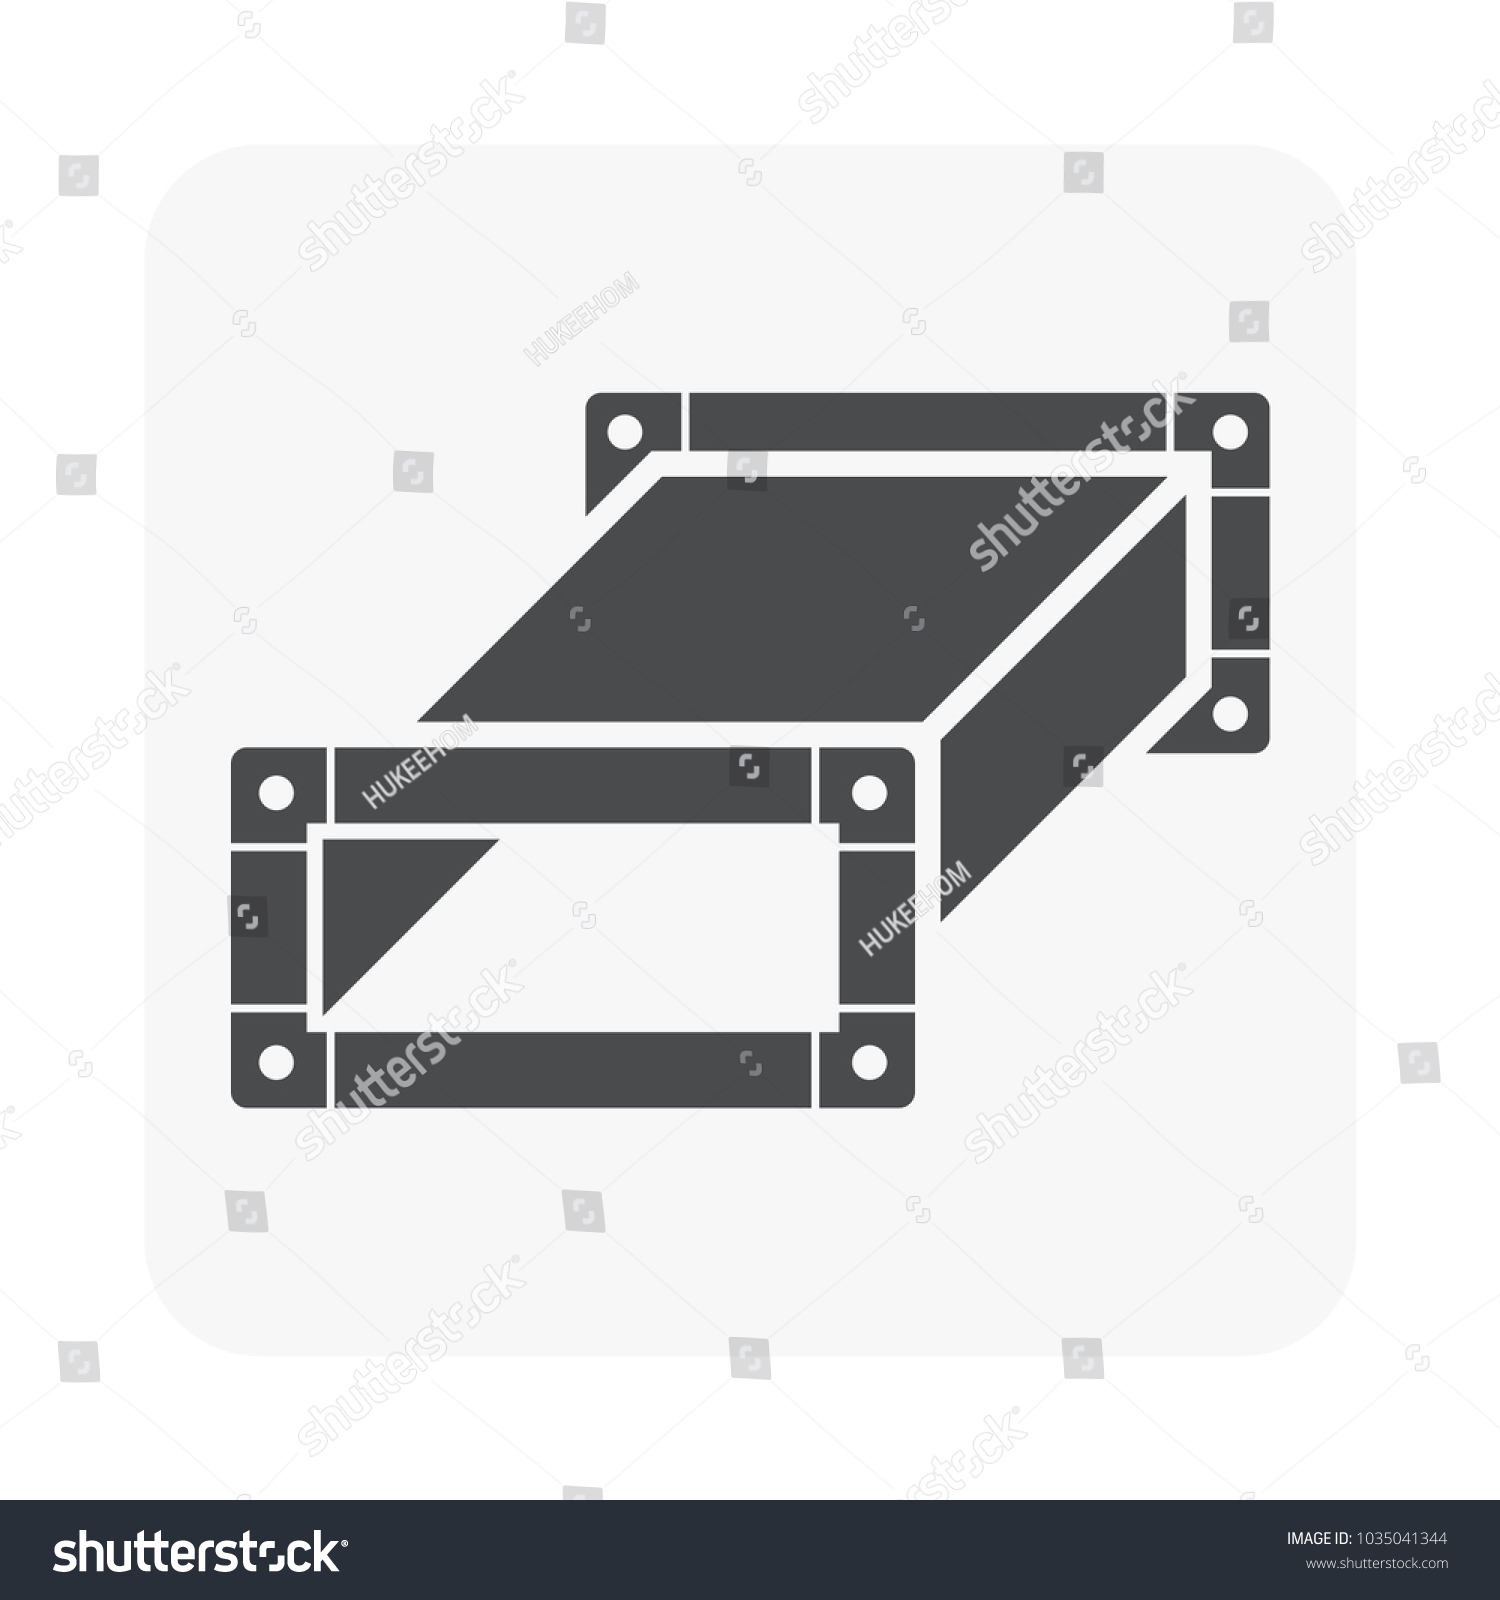 hight resolution of air duct pipe icon for hvac system